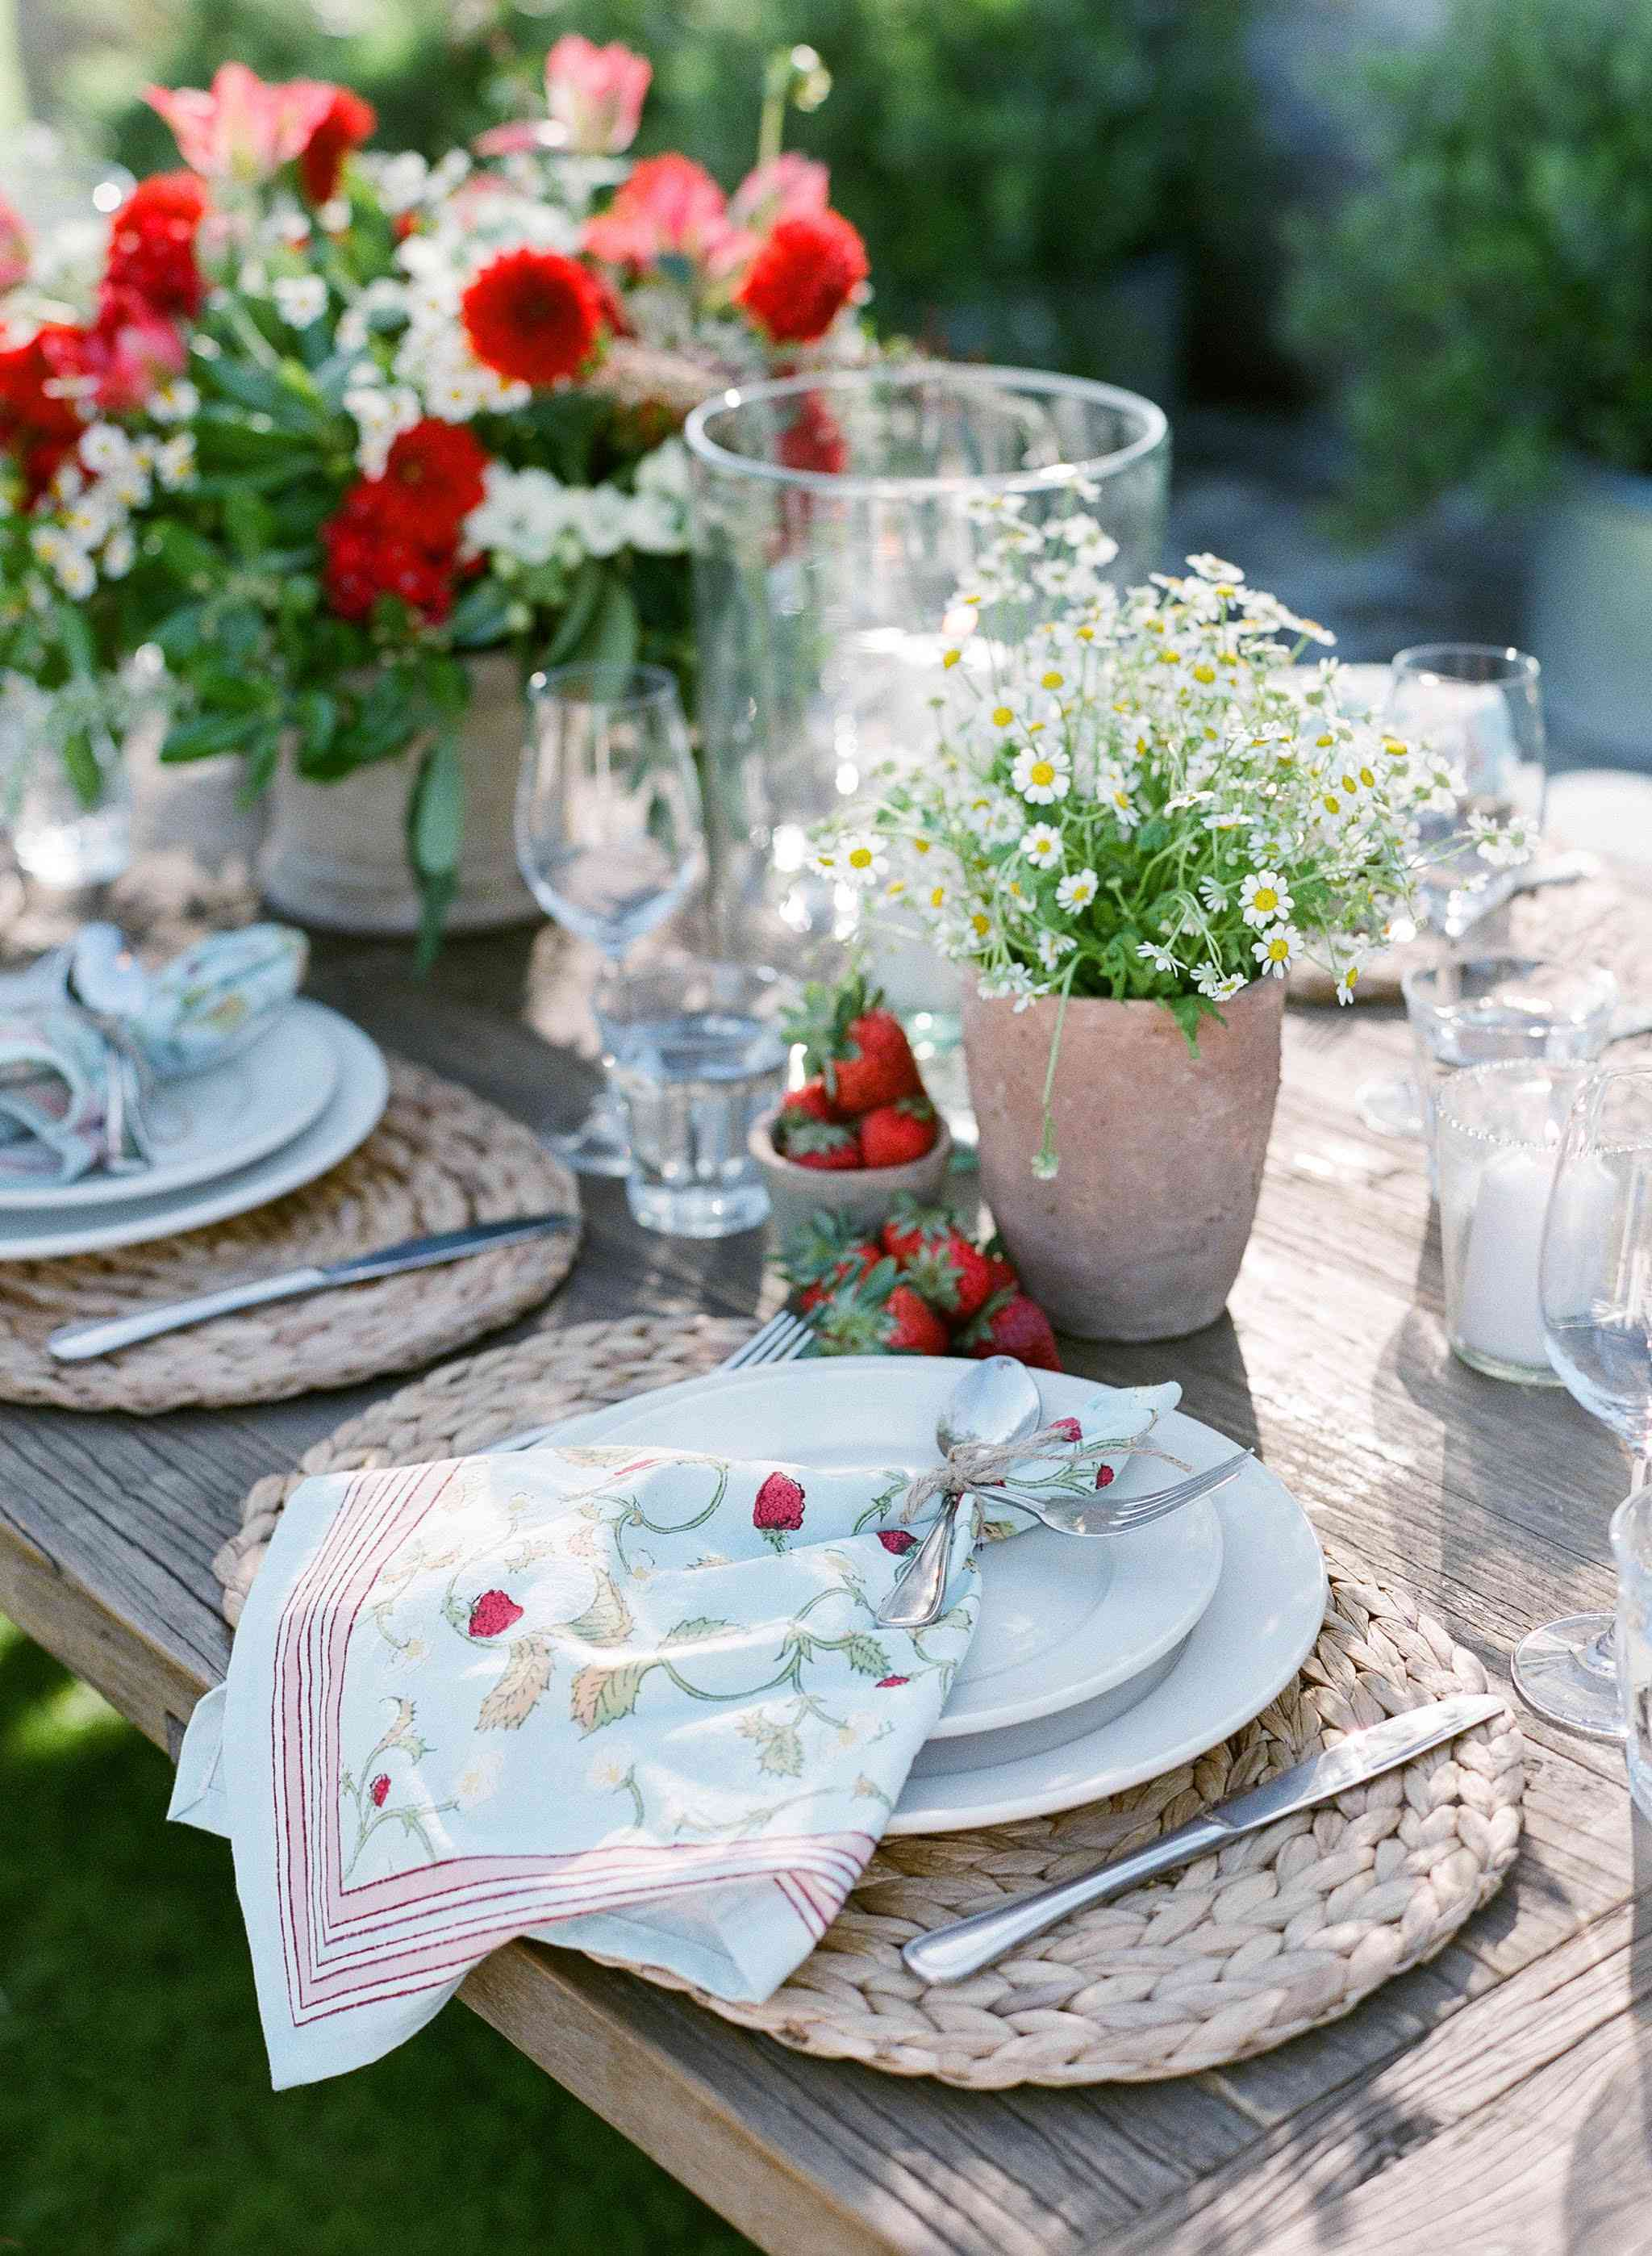 Table setting outdoors with fresh strawberries